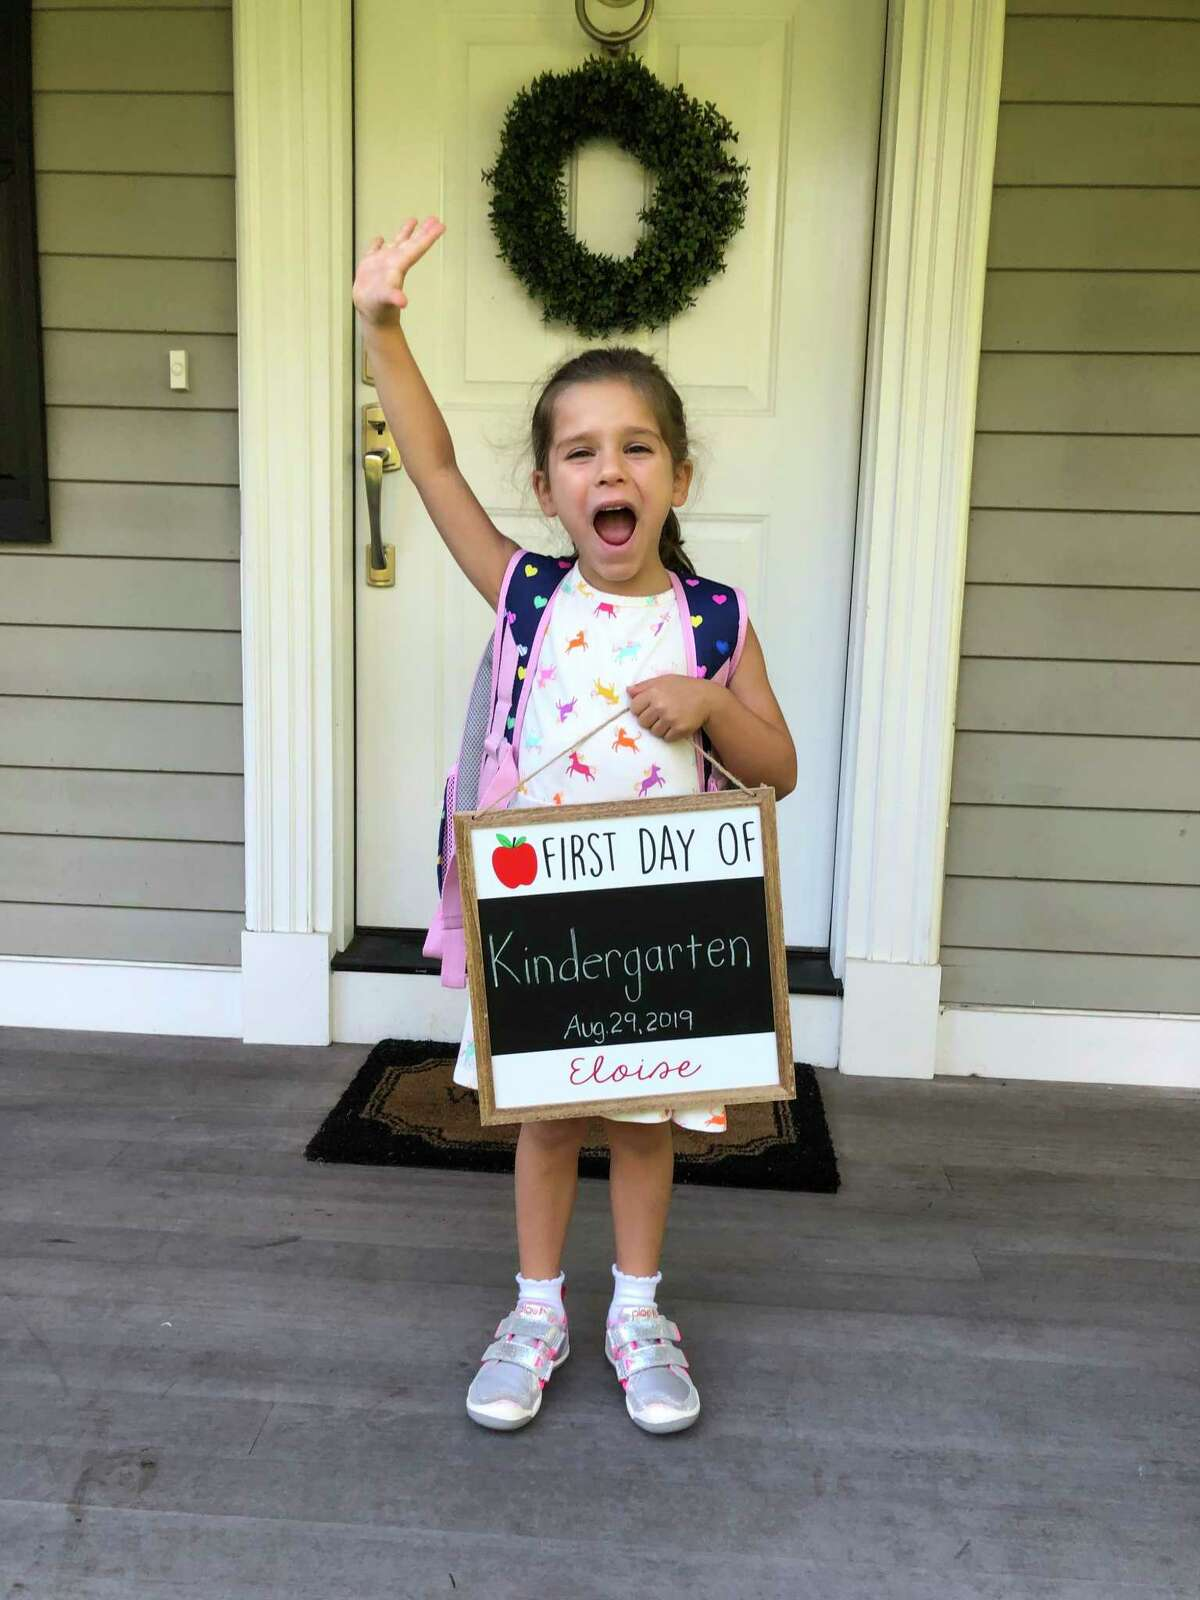 One Barlow Mountain Elementary School kindergartner is excited for the first day.